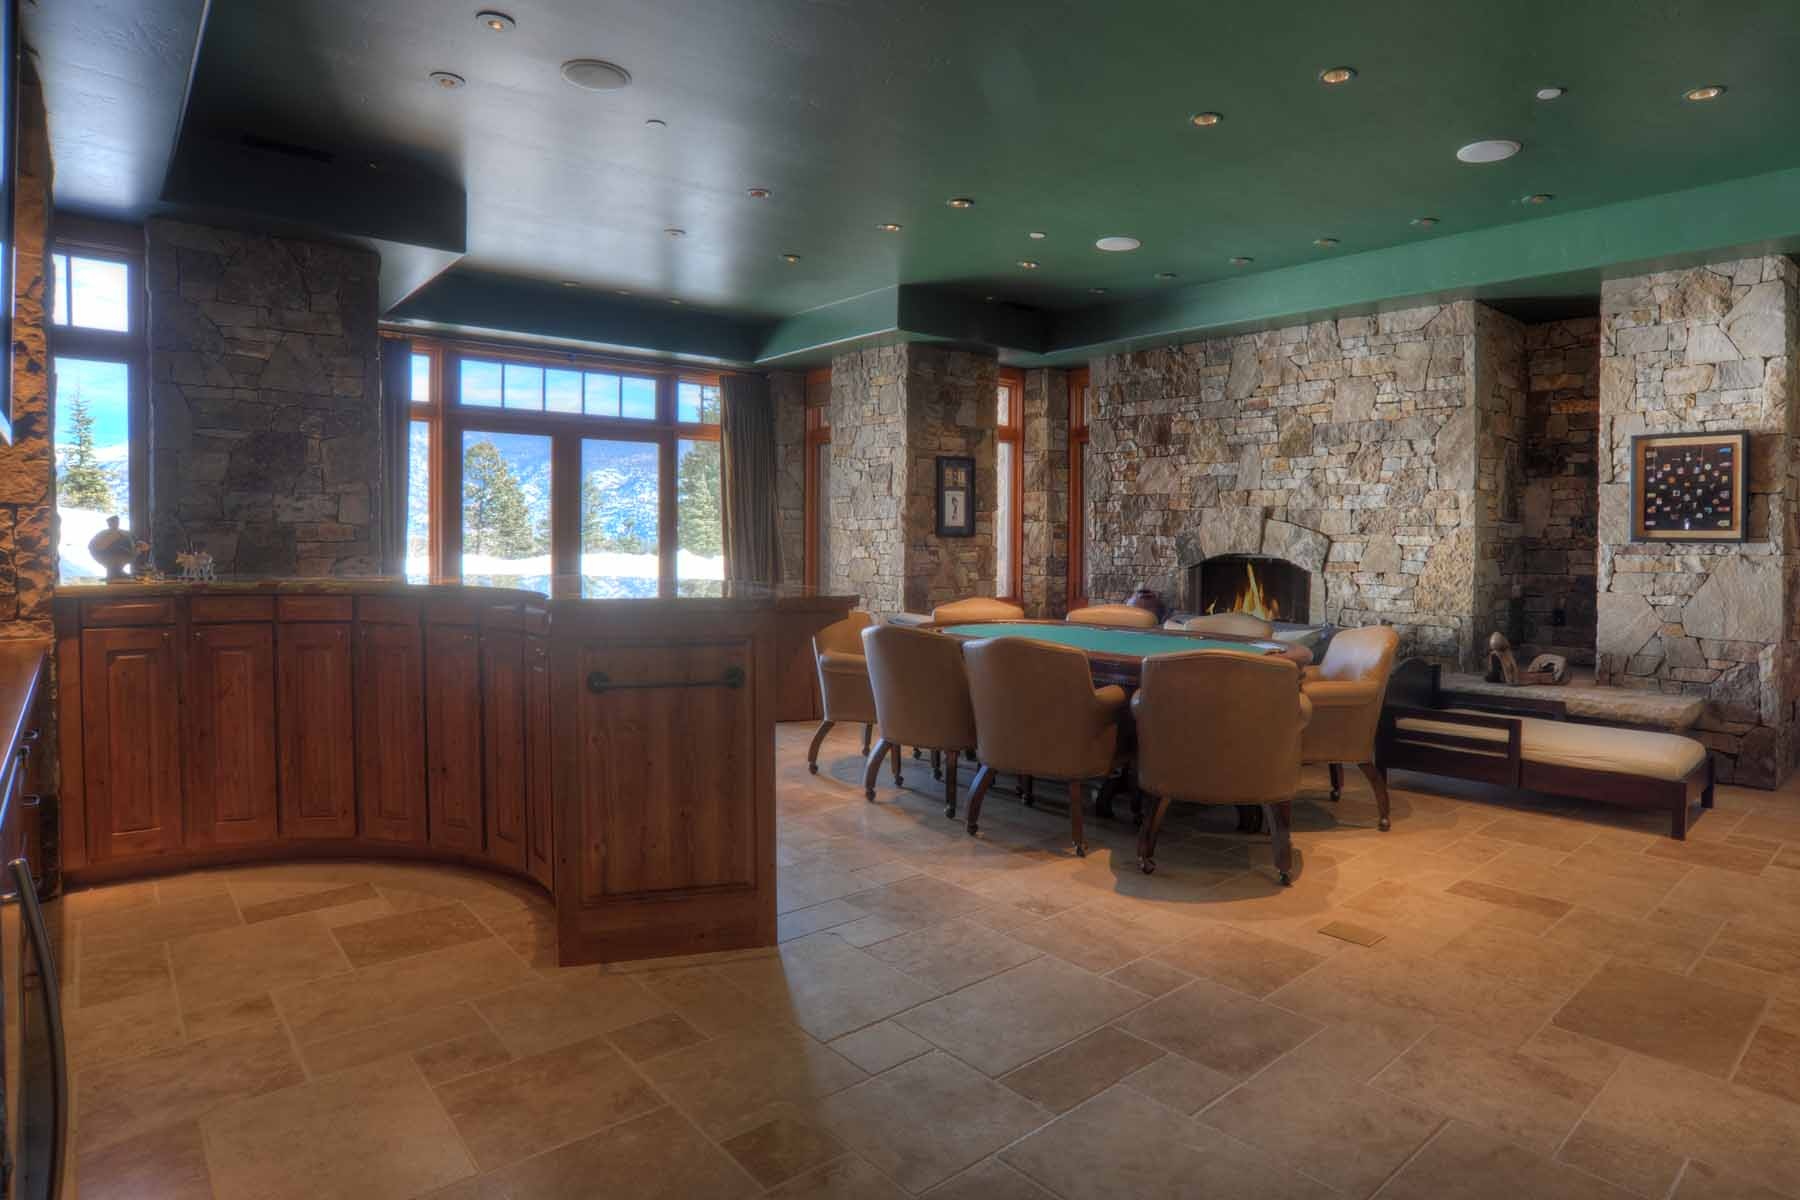 Additional photo for property listing at 421 S Windom Way 421 S Windom Way Durango, Colorado 81301 United States